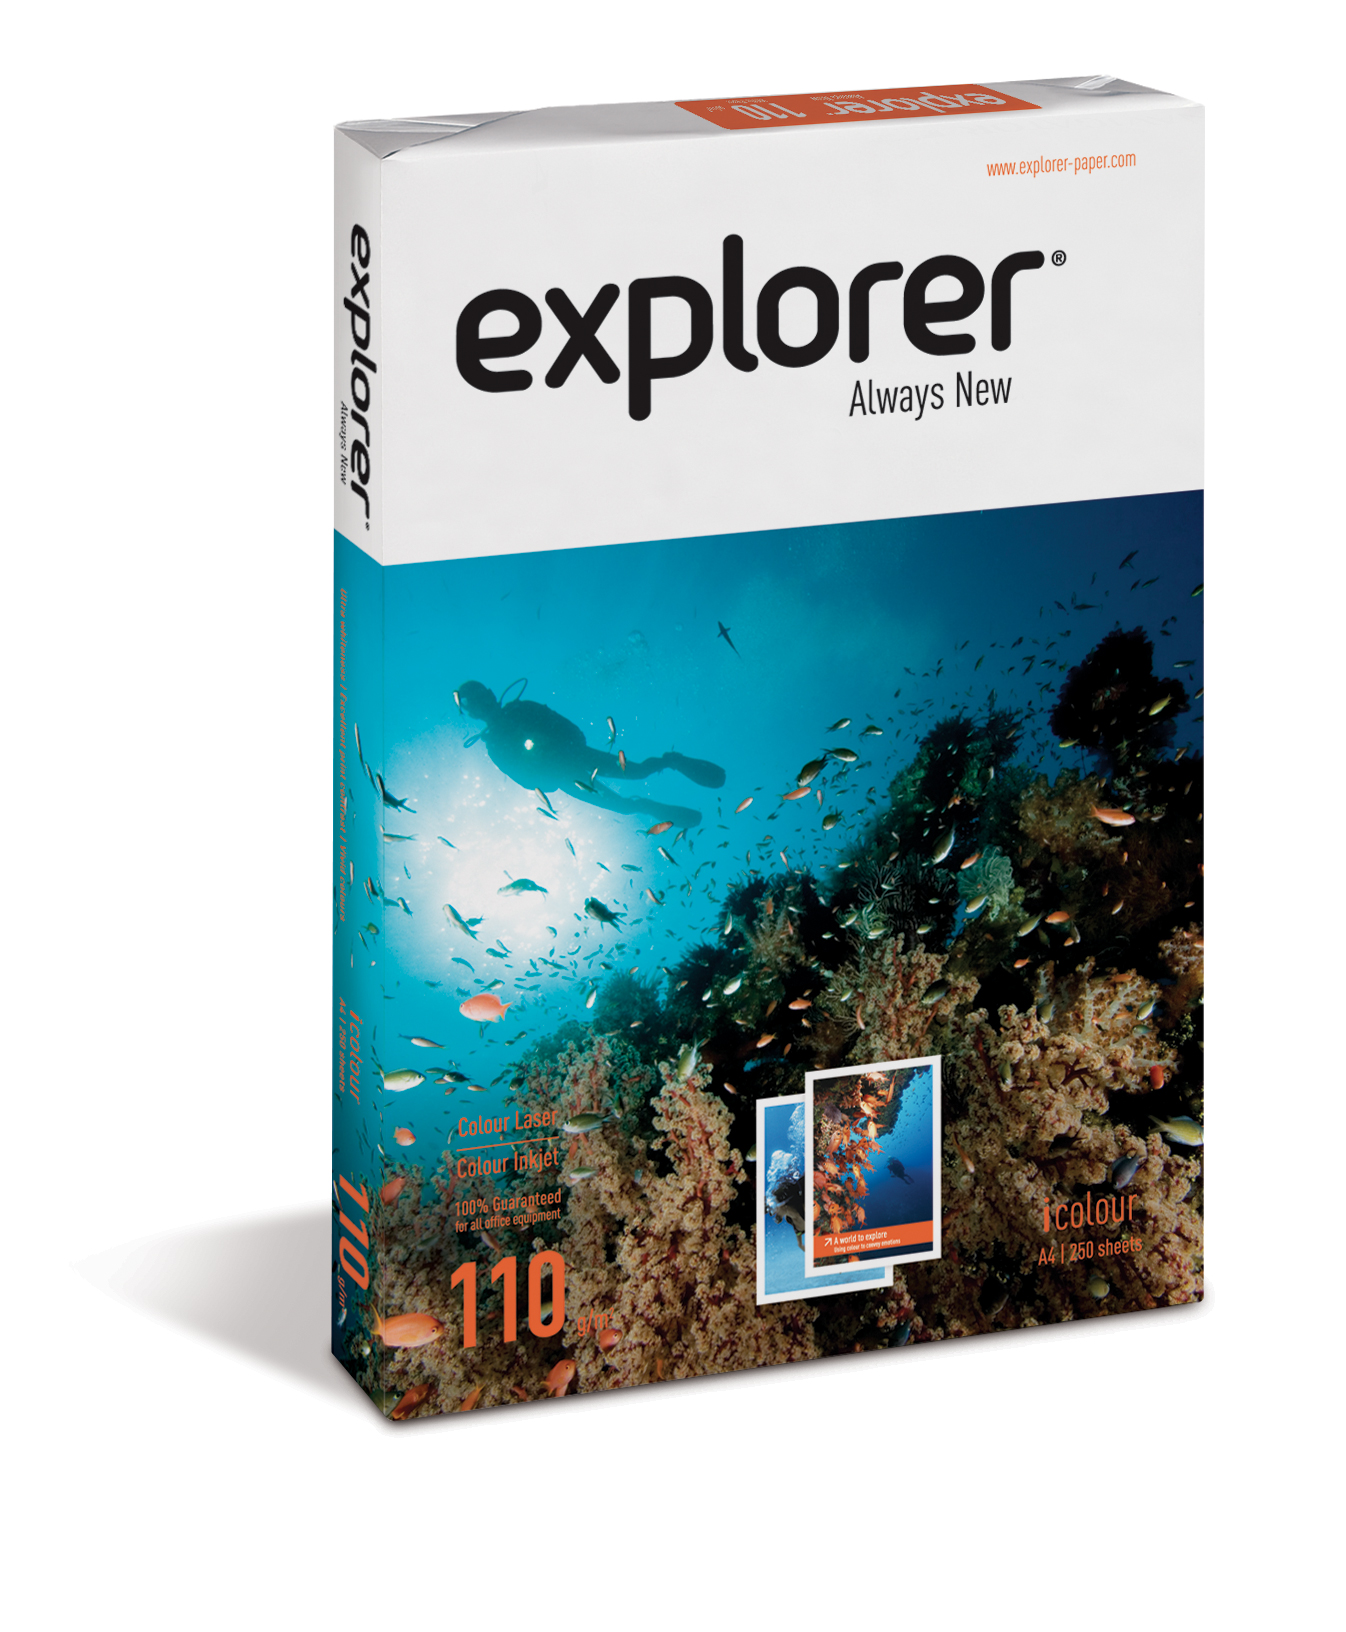 Explorer Always New 110g/m² Papier DIN-A4 - 250 Blatt weiß